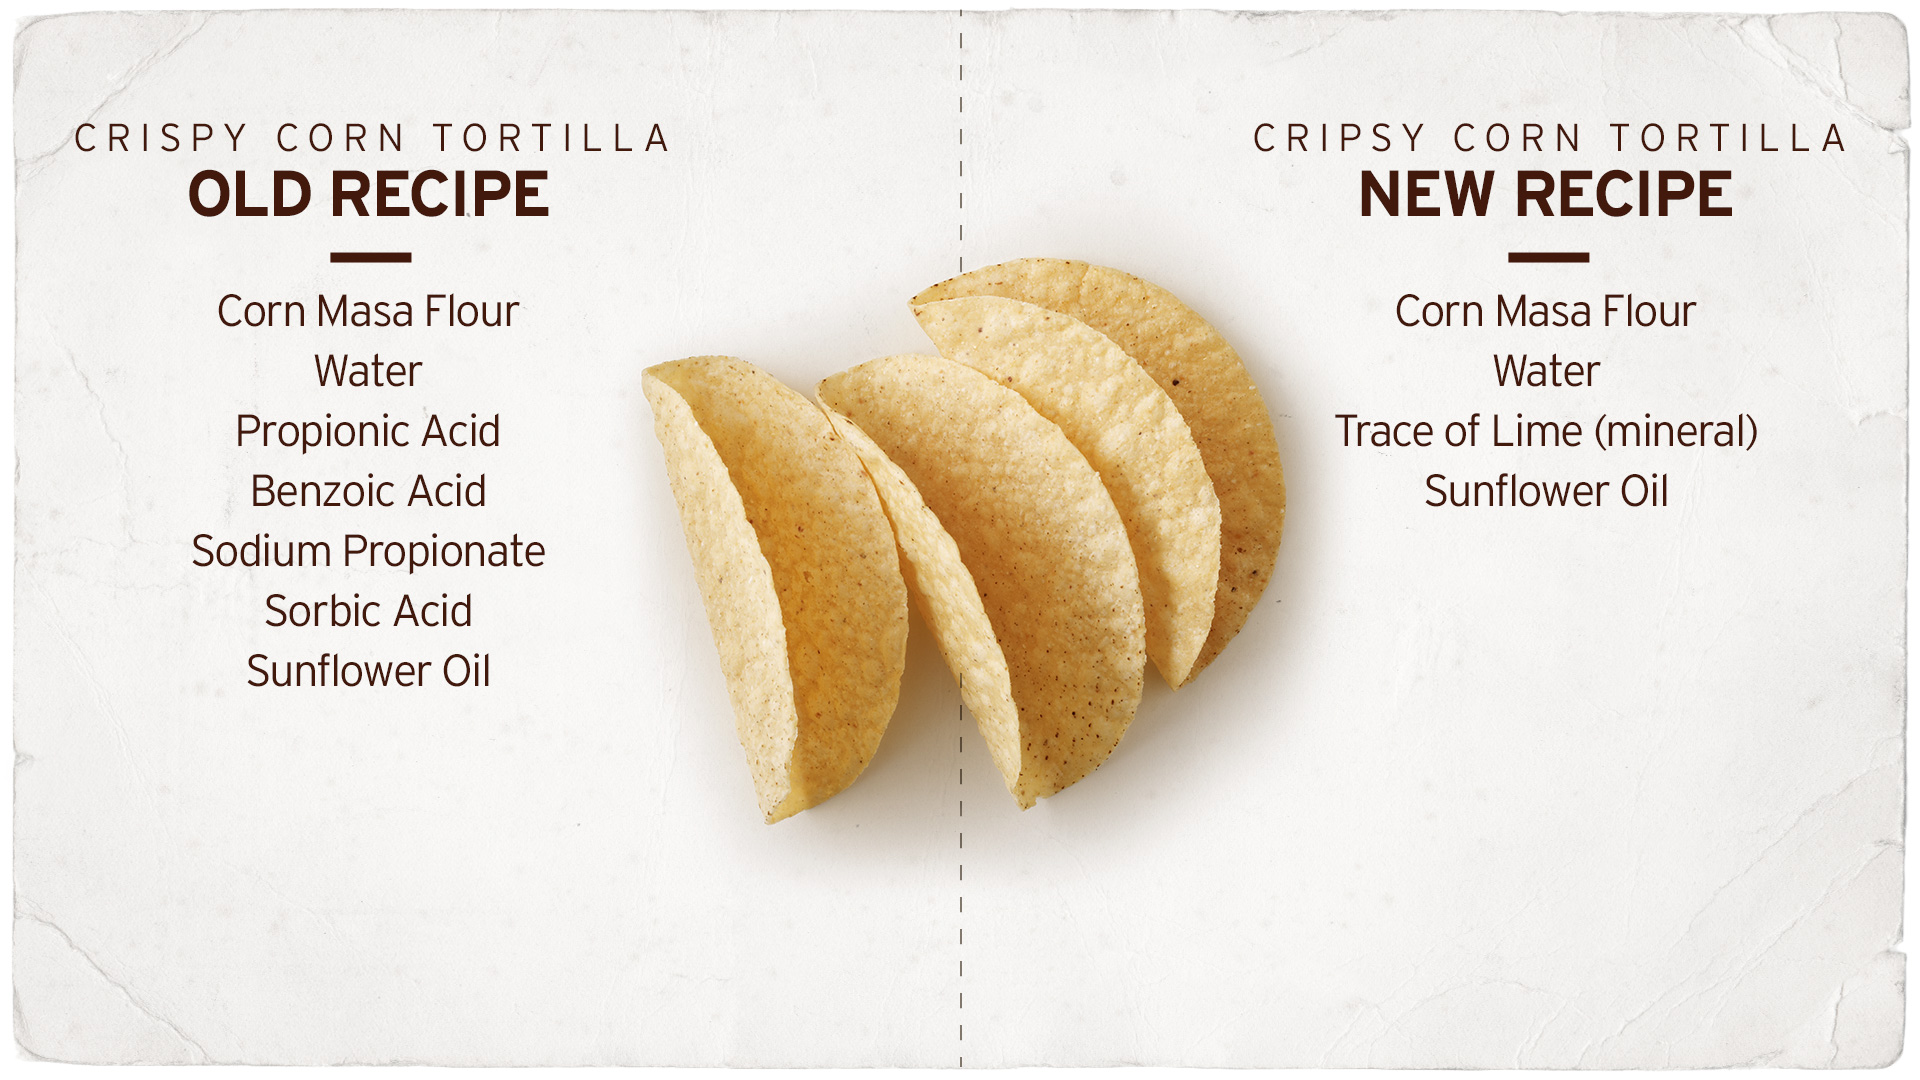 A list of the old crispy corn tortilla recipe and a list of the new crispy corn tortilla recipe, now with just five ingredients: non-gmo corn masa flour, water, the mineral lime, and sunflower oil.